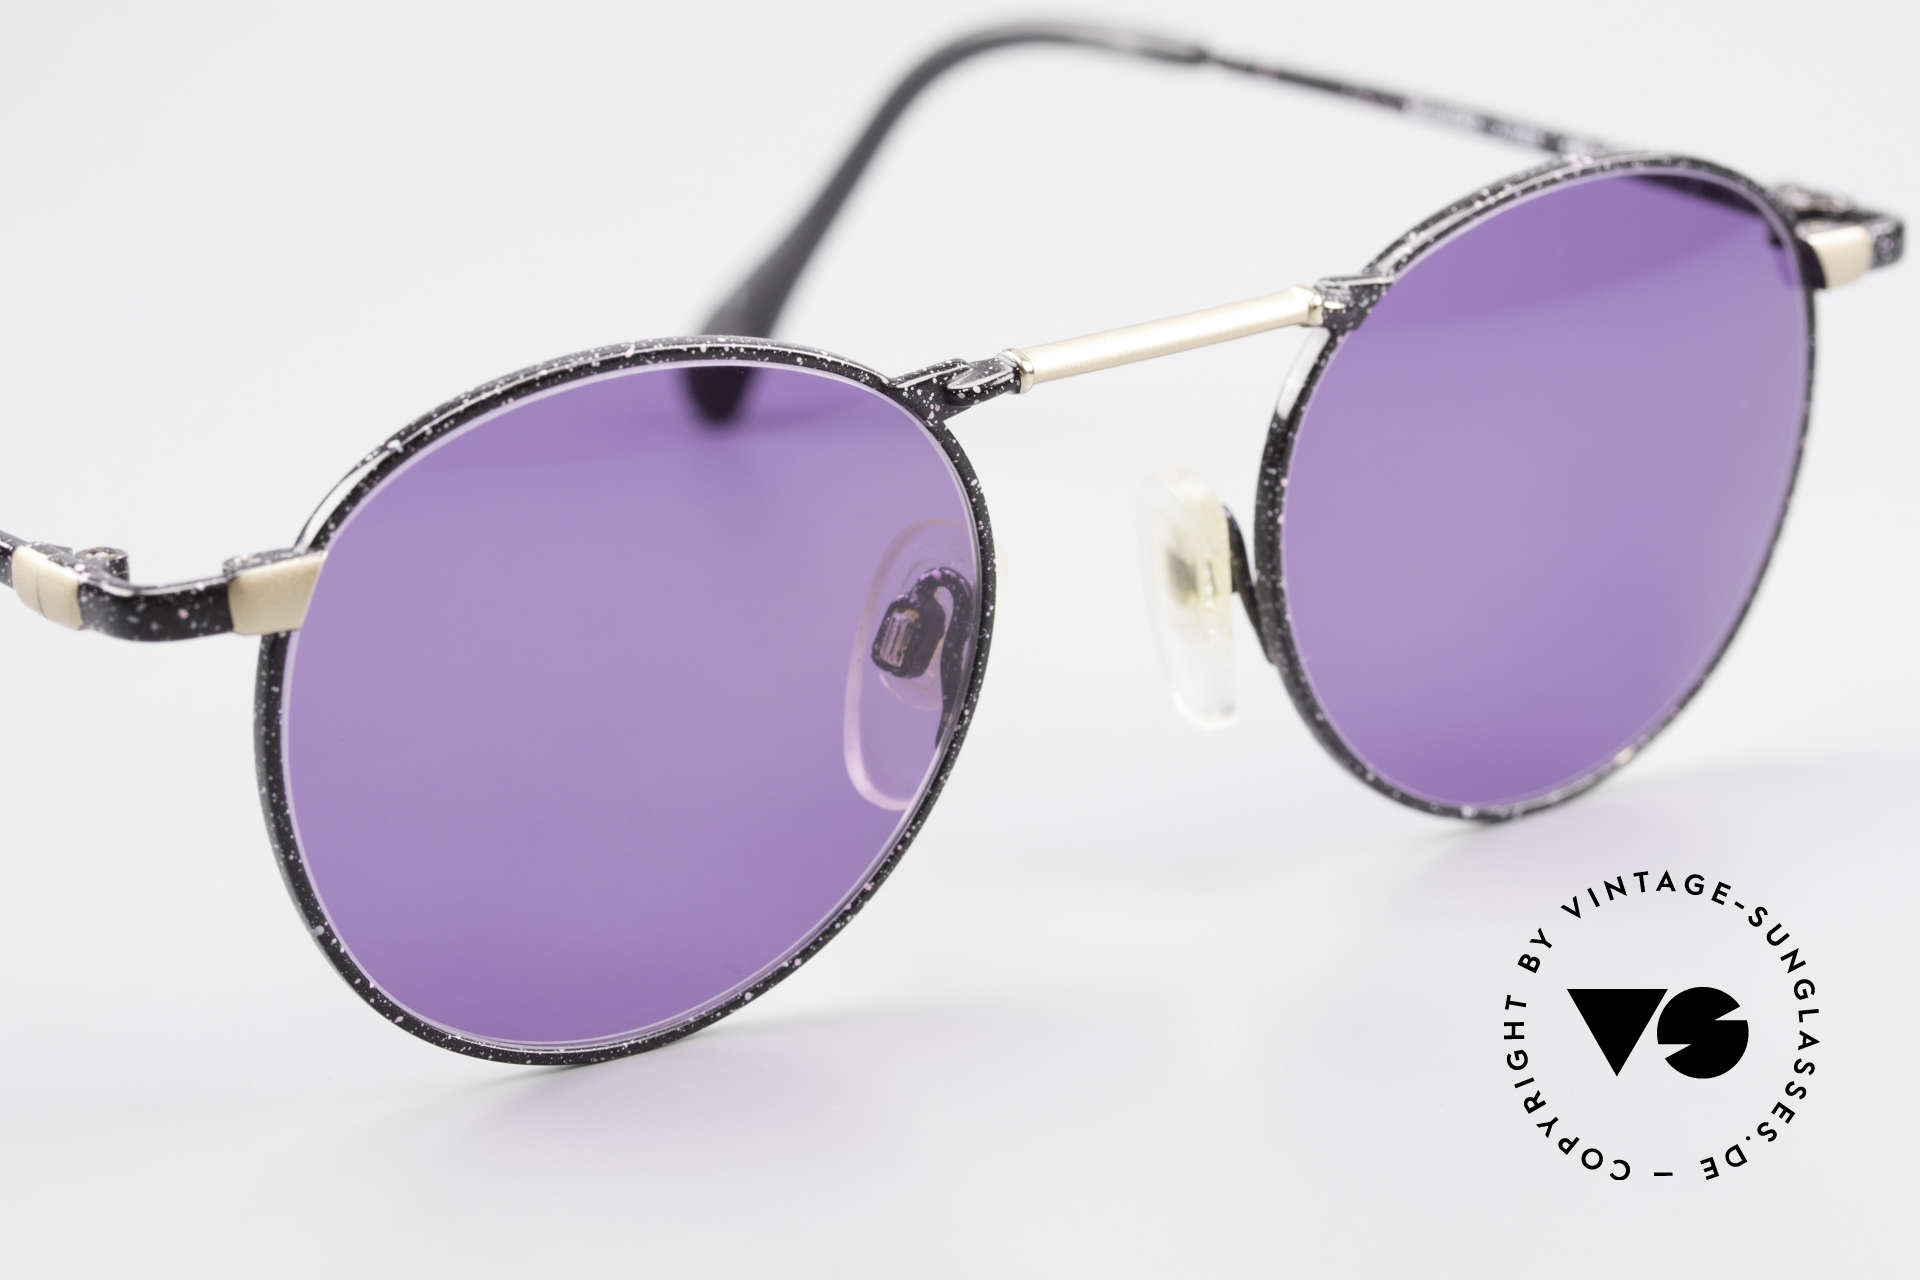 Neostyle Academic 2 80's Purple Panto Sunglasses, never worn, NOS (like all our vintage eyewear), Made for Men and Women